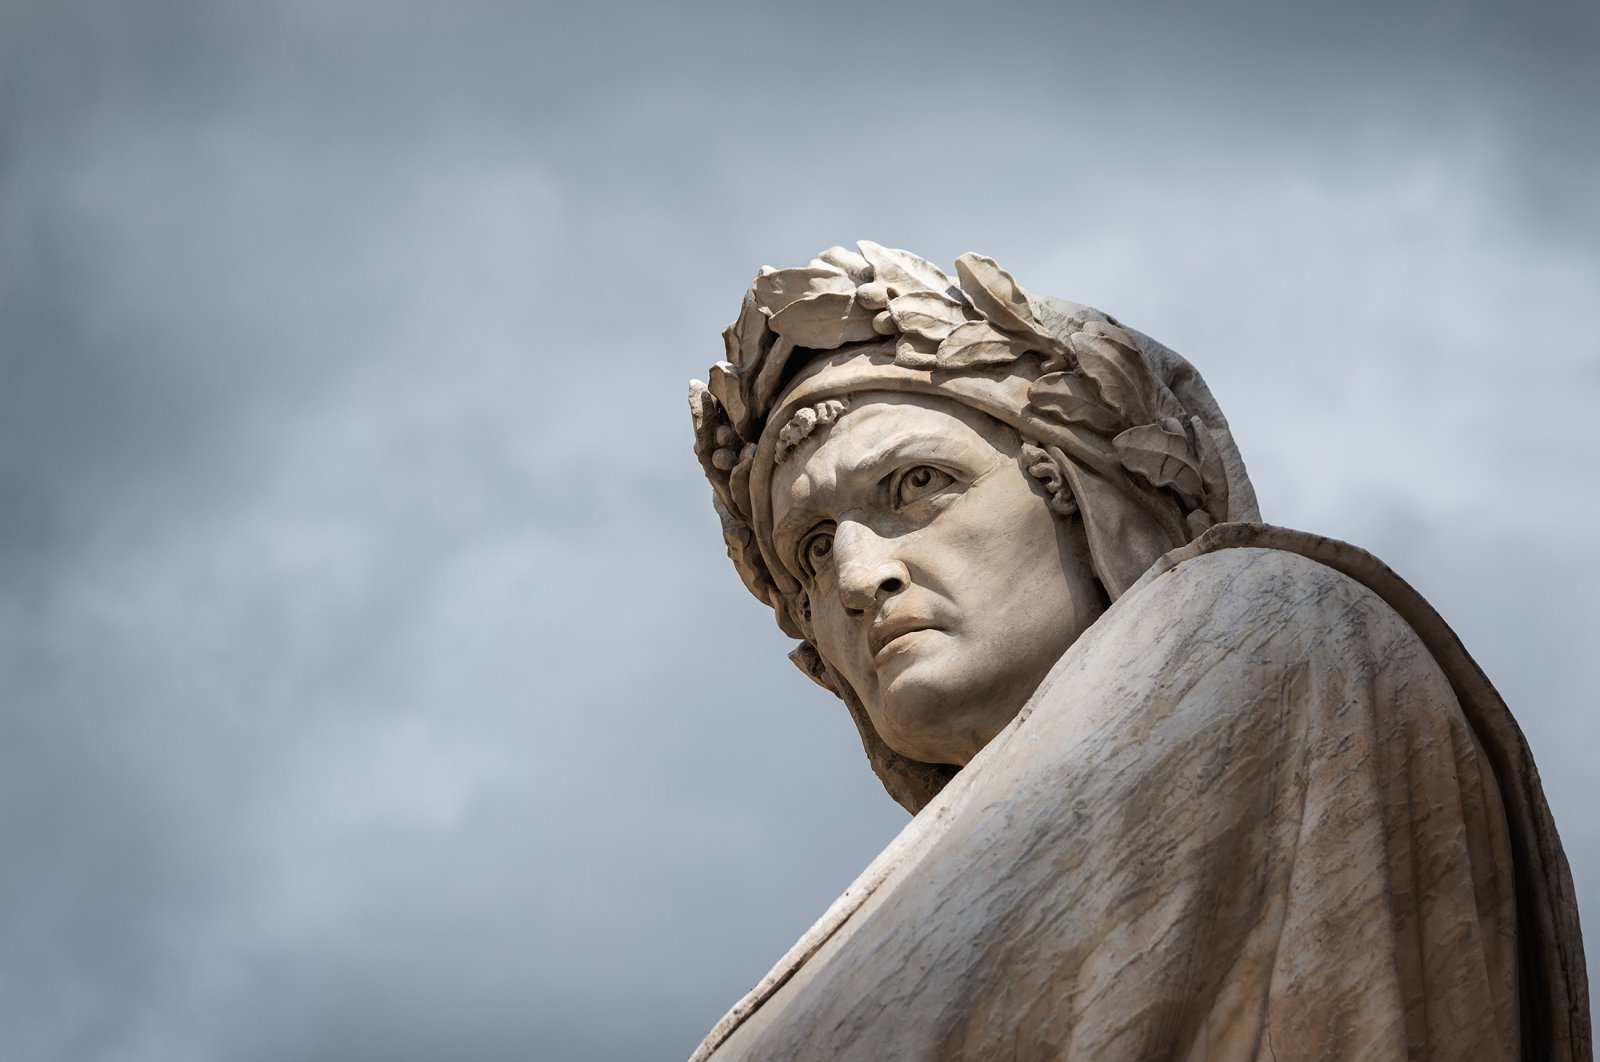 Close-up shot of the famous white marble monument of Dante Alighieri by  Enrico Pazzi in Piazza Santa Croce, next to Basilica of Santa Croce, Florence, Italy. (Shutterstock Photo)